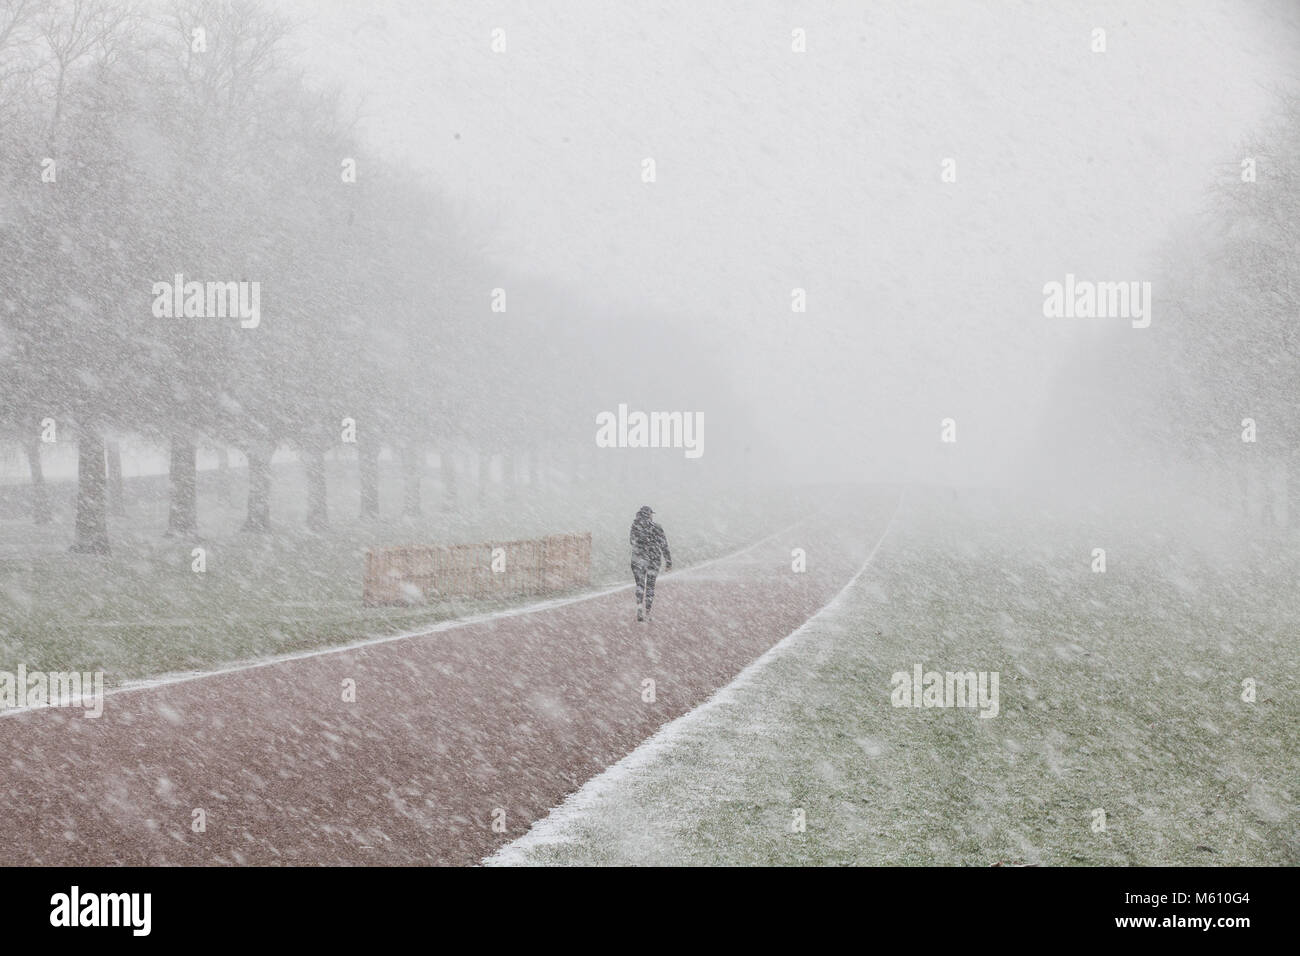 Windsor, UK. 27th February, 2018. A woman walks on the Long Walk in Windsor Great Park in swirling snow. Credit: Stock Photo